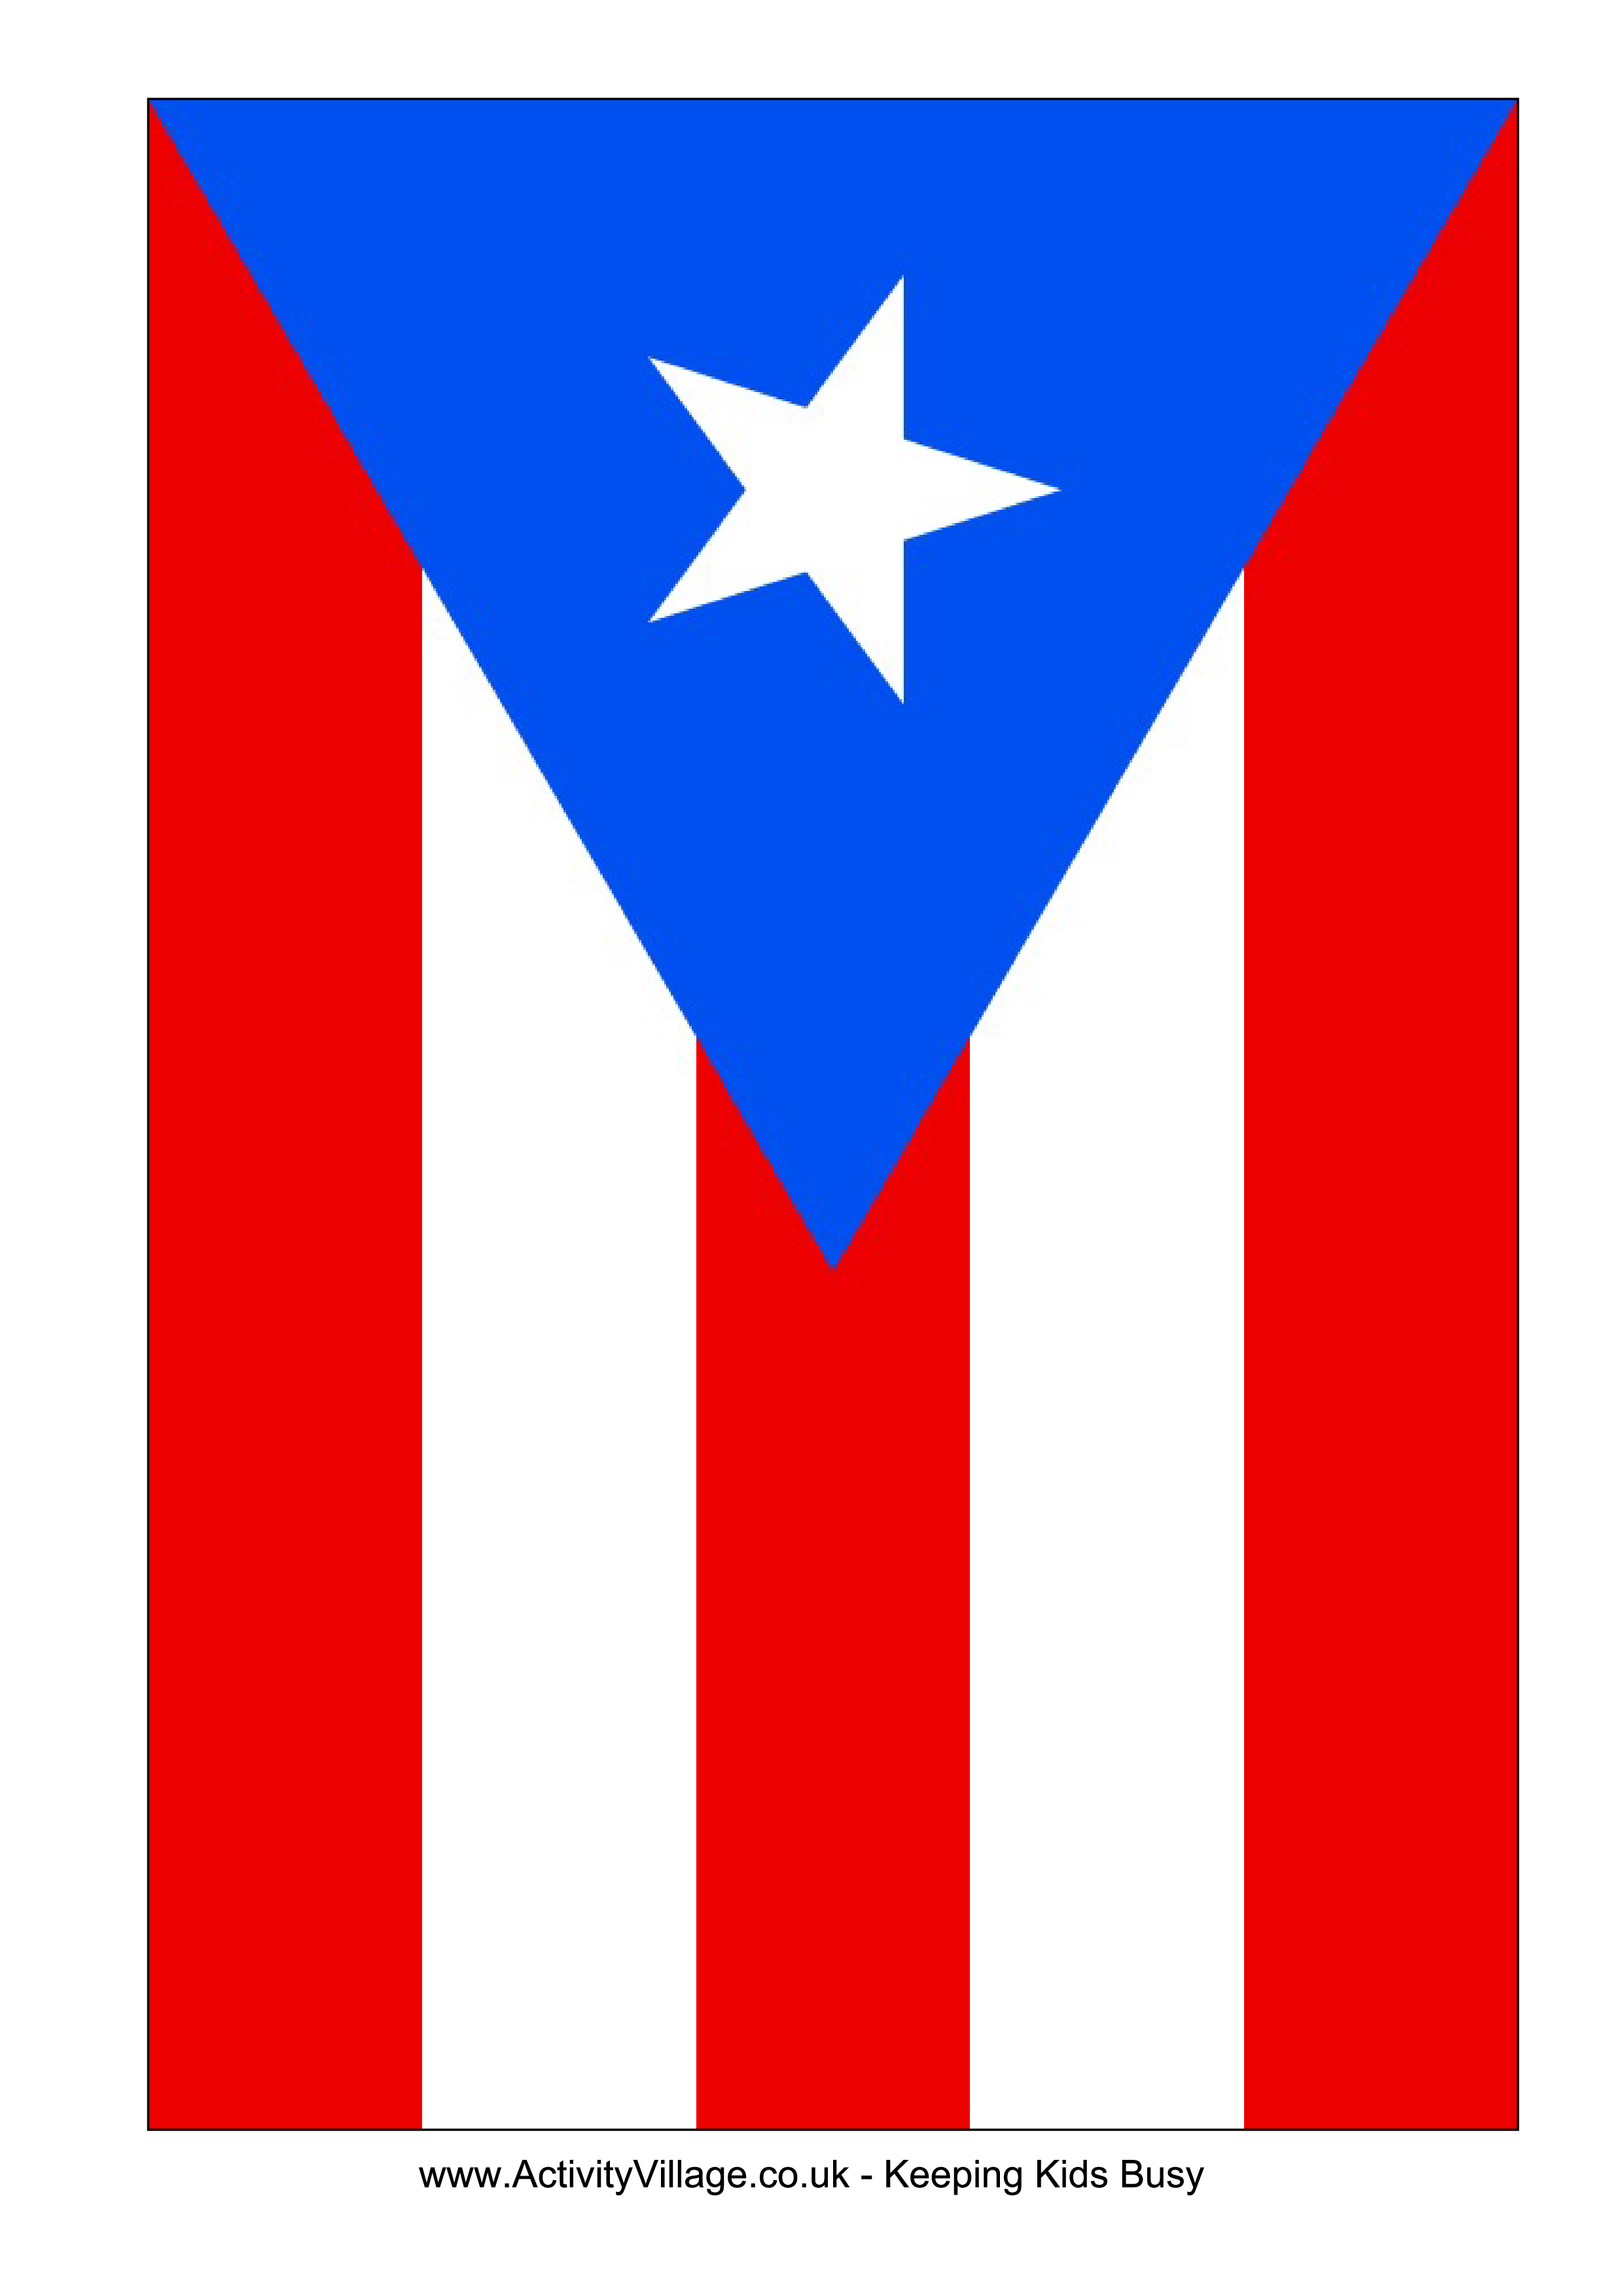 Coqui drawing flag puerto rican. Download this free printable